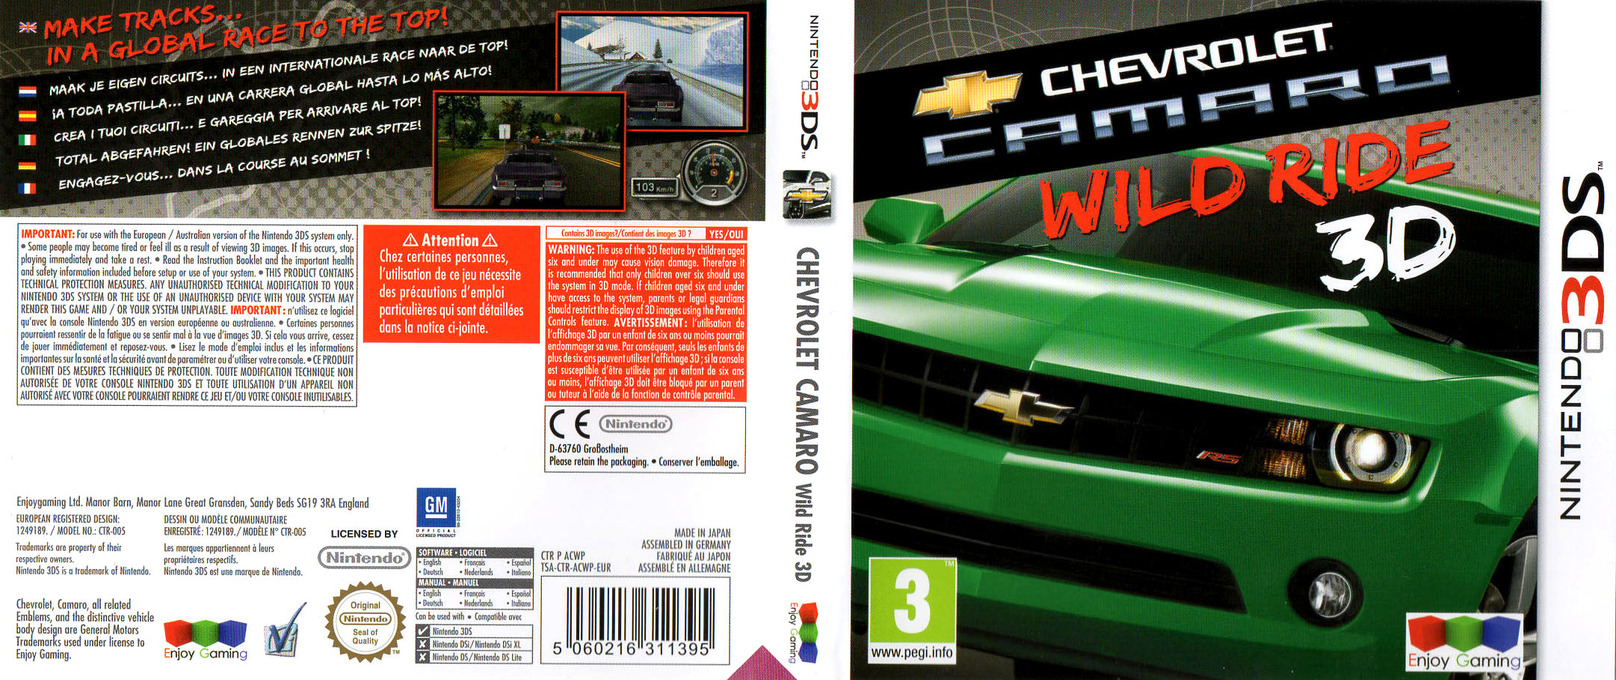 Chevrolet Camaro - Wild Ride 3D 3DS coverfullHQ (ACWP)